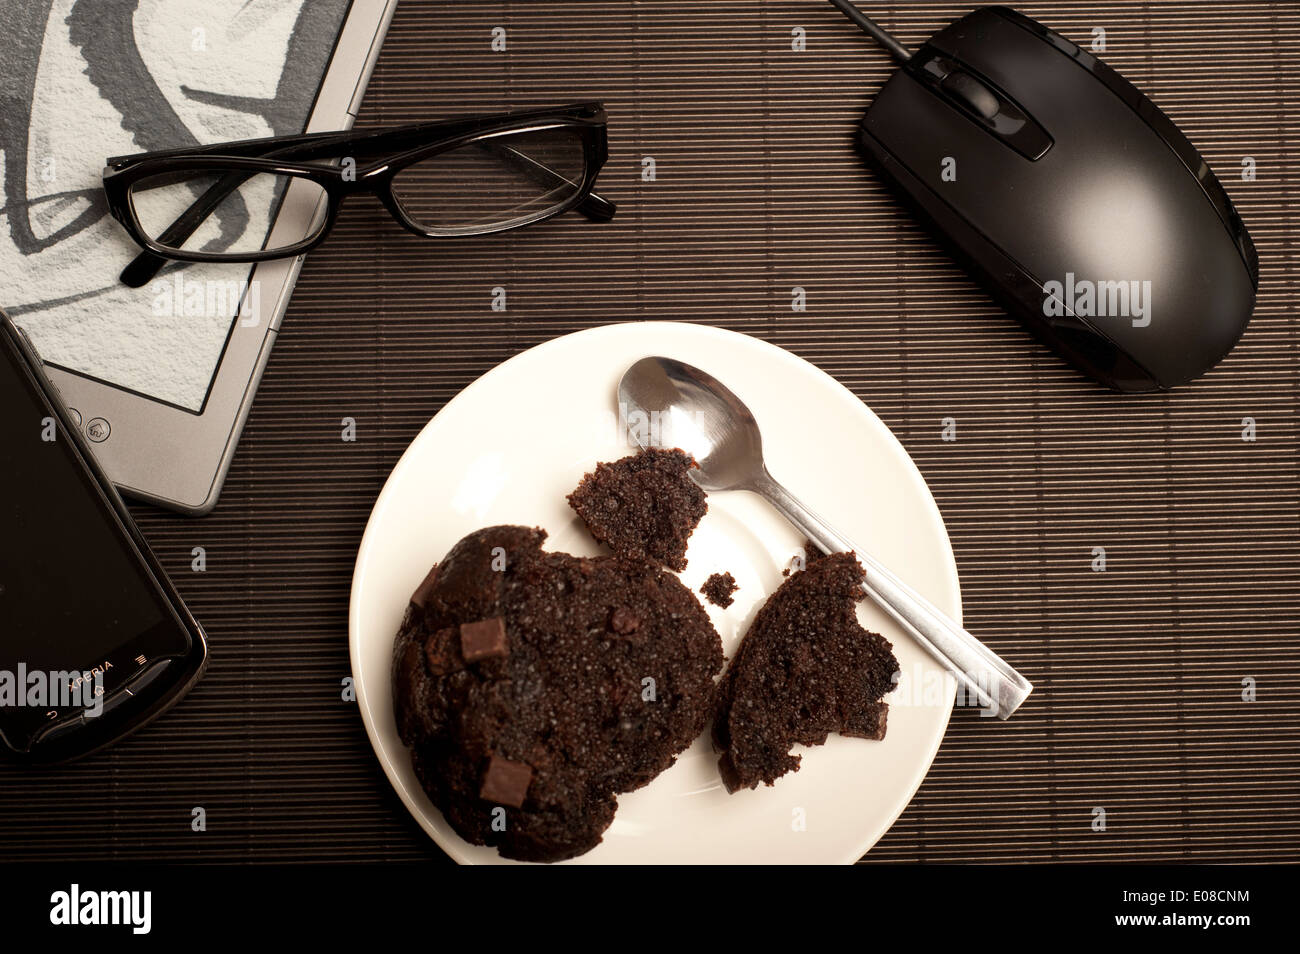 muffin and technology objects - Stock Image